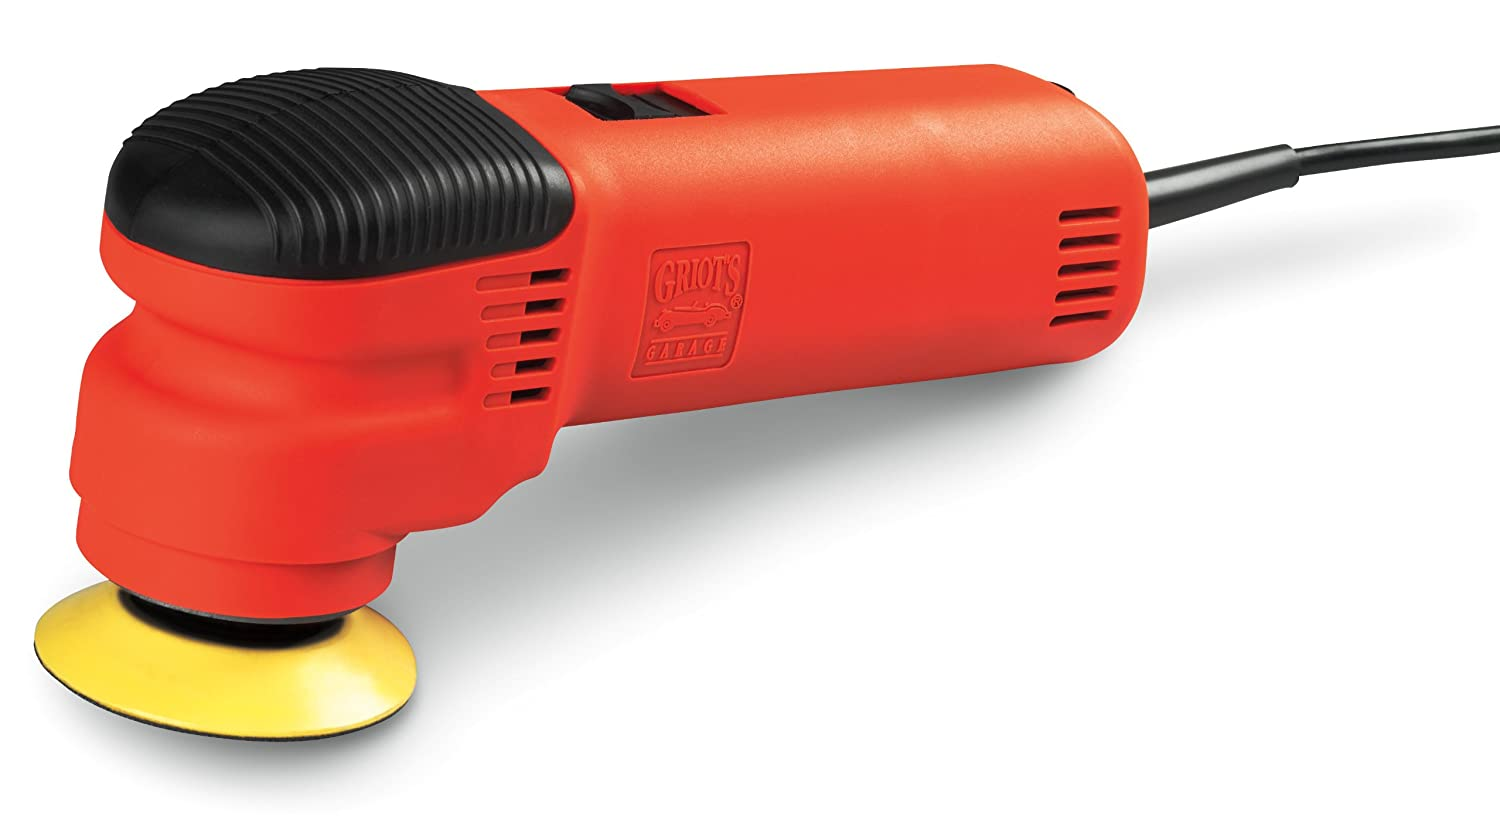 """Griot's Garage 10739LNGCRD 25ft 3"""" Dual Action Random Orbital Polisher with 25' Cord"""